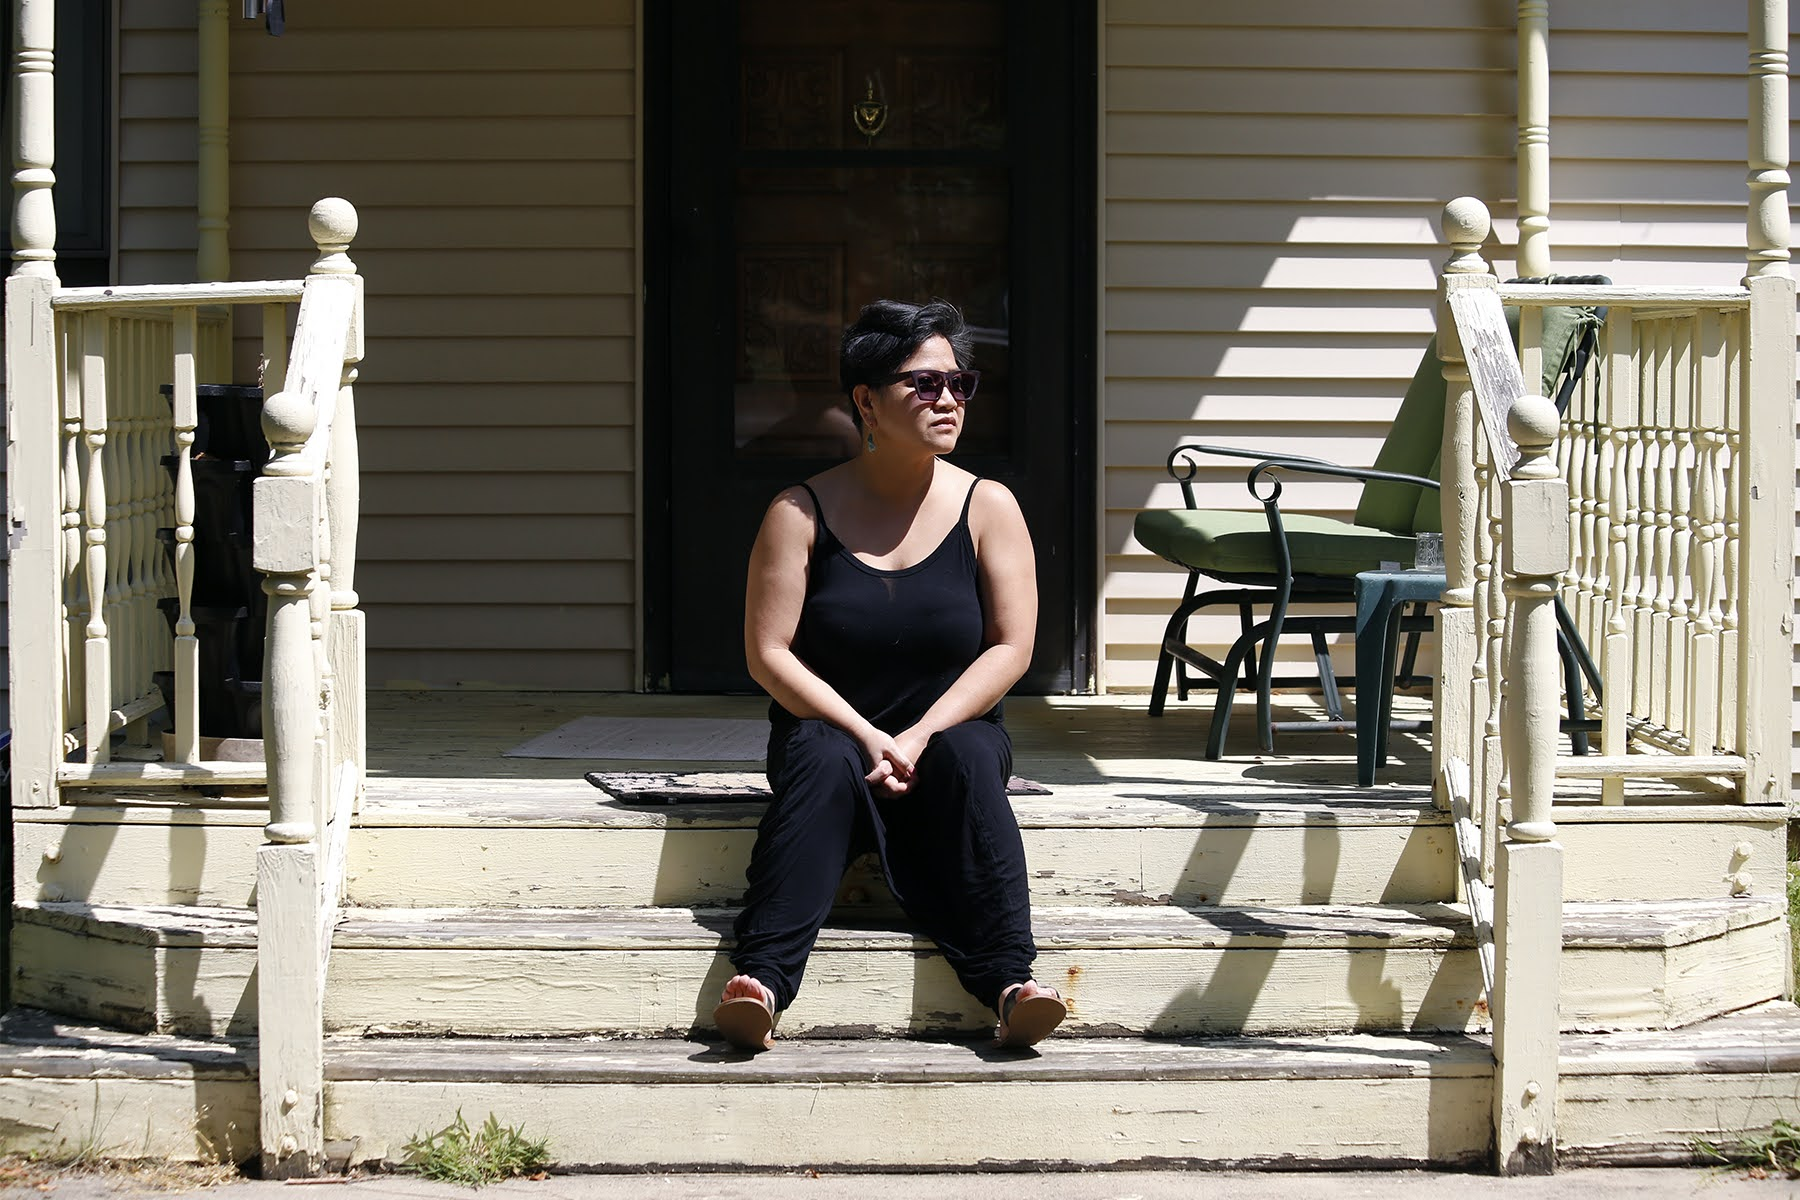 Photograph of Fran Flaherty sitting on the steps leading up to her home.